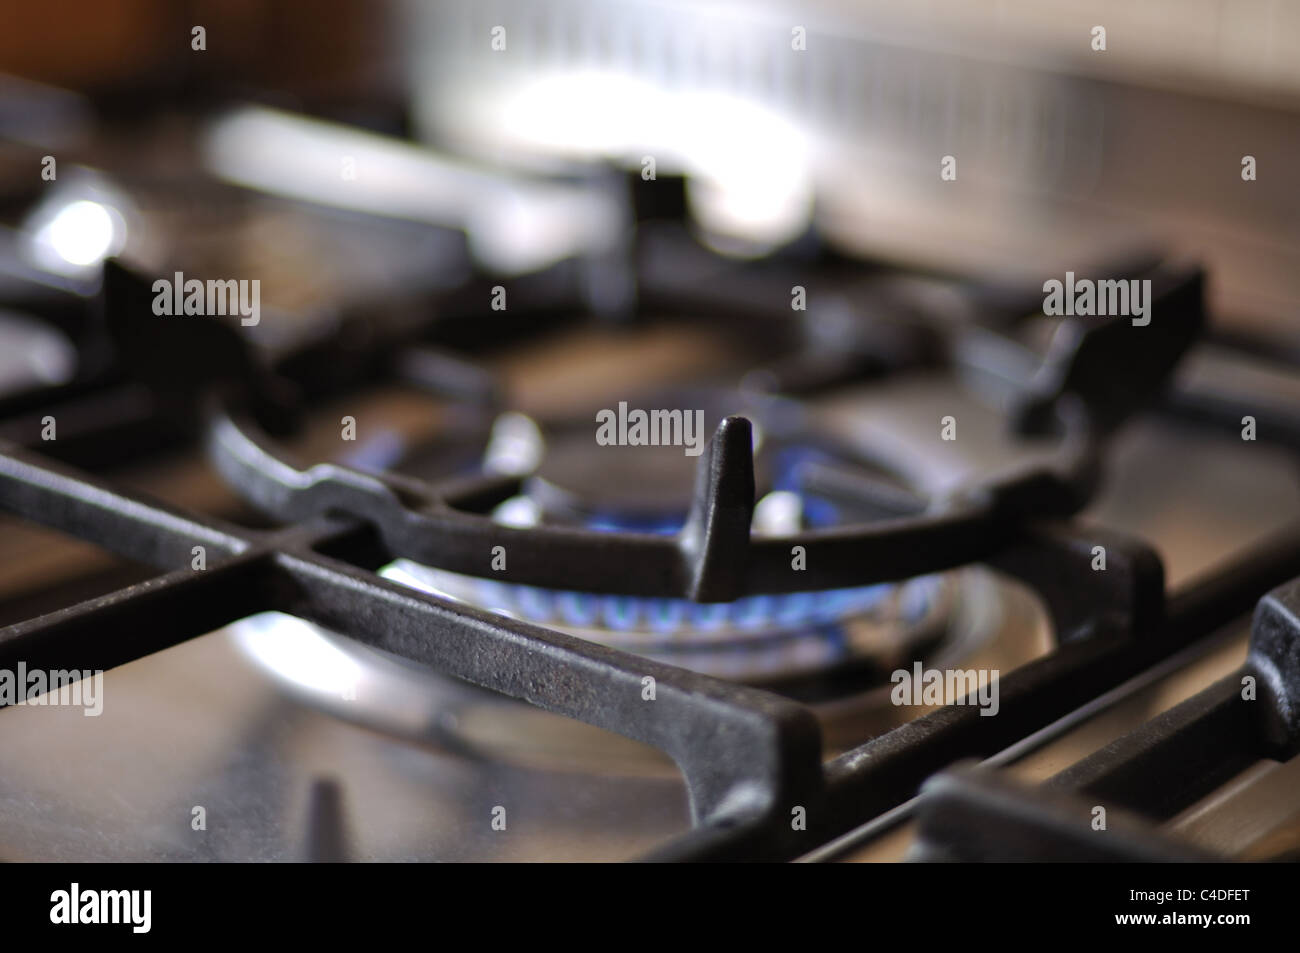 cooker hob gas ring Stock Photo, Royalty Free Image: 37176912 - Alamy